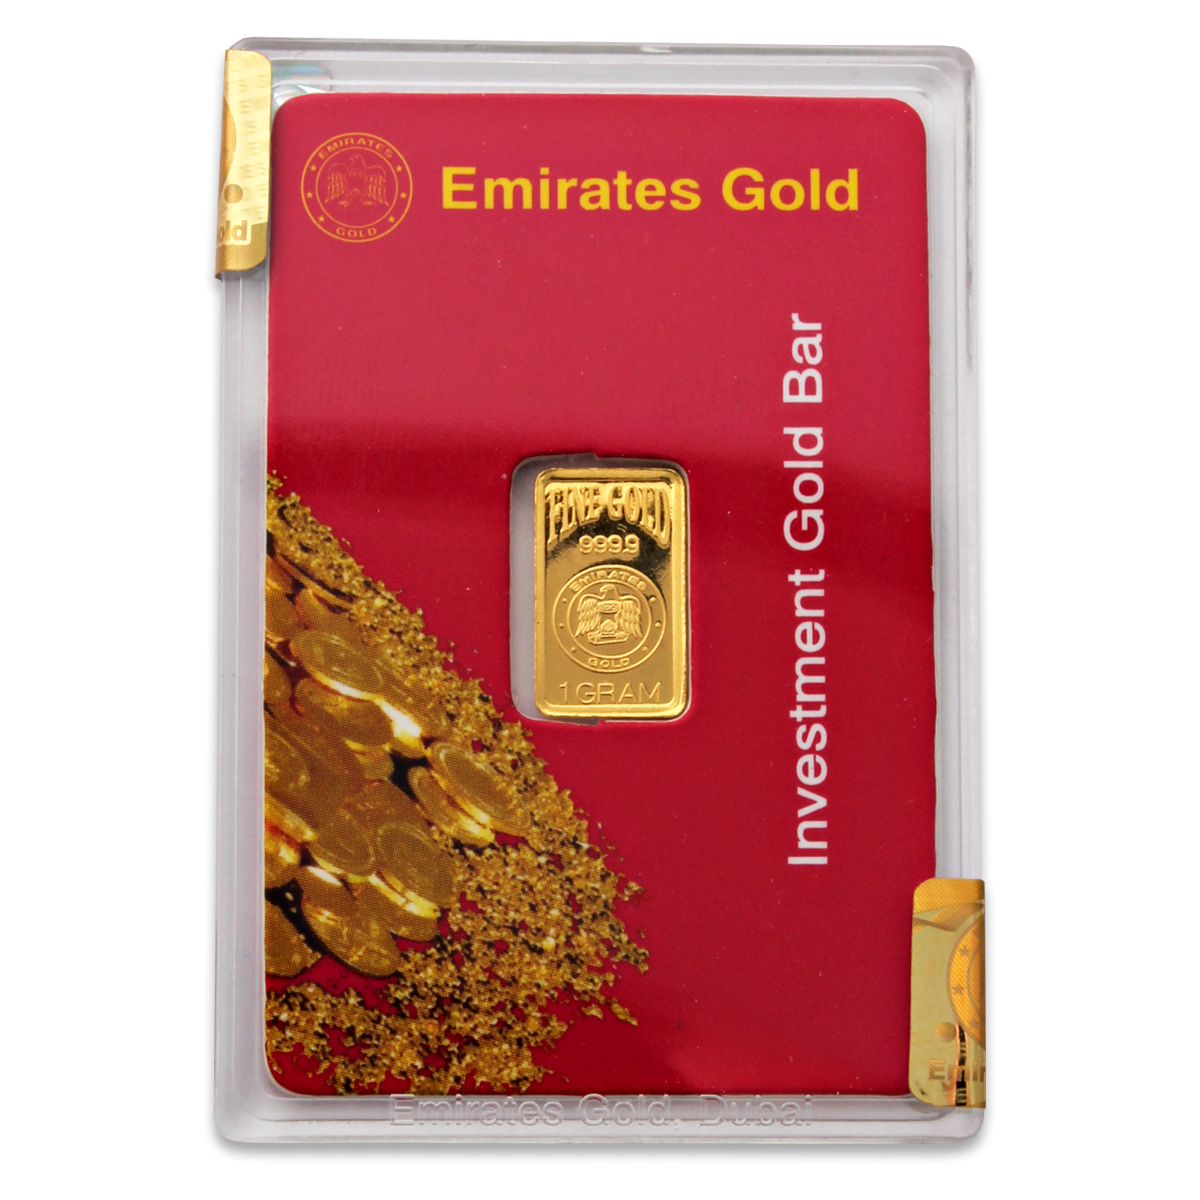 Emirates Gold 1 Gram Gold Bar 24 Carat Emirates Gold